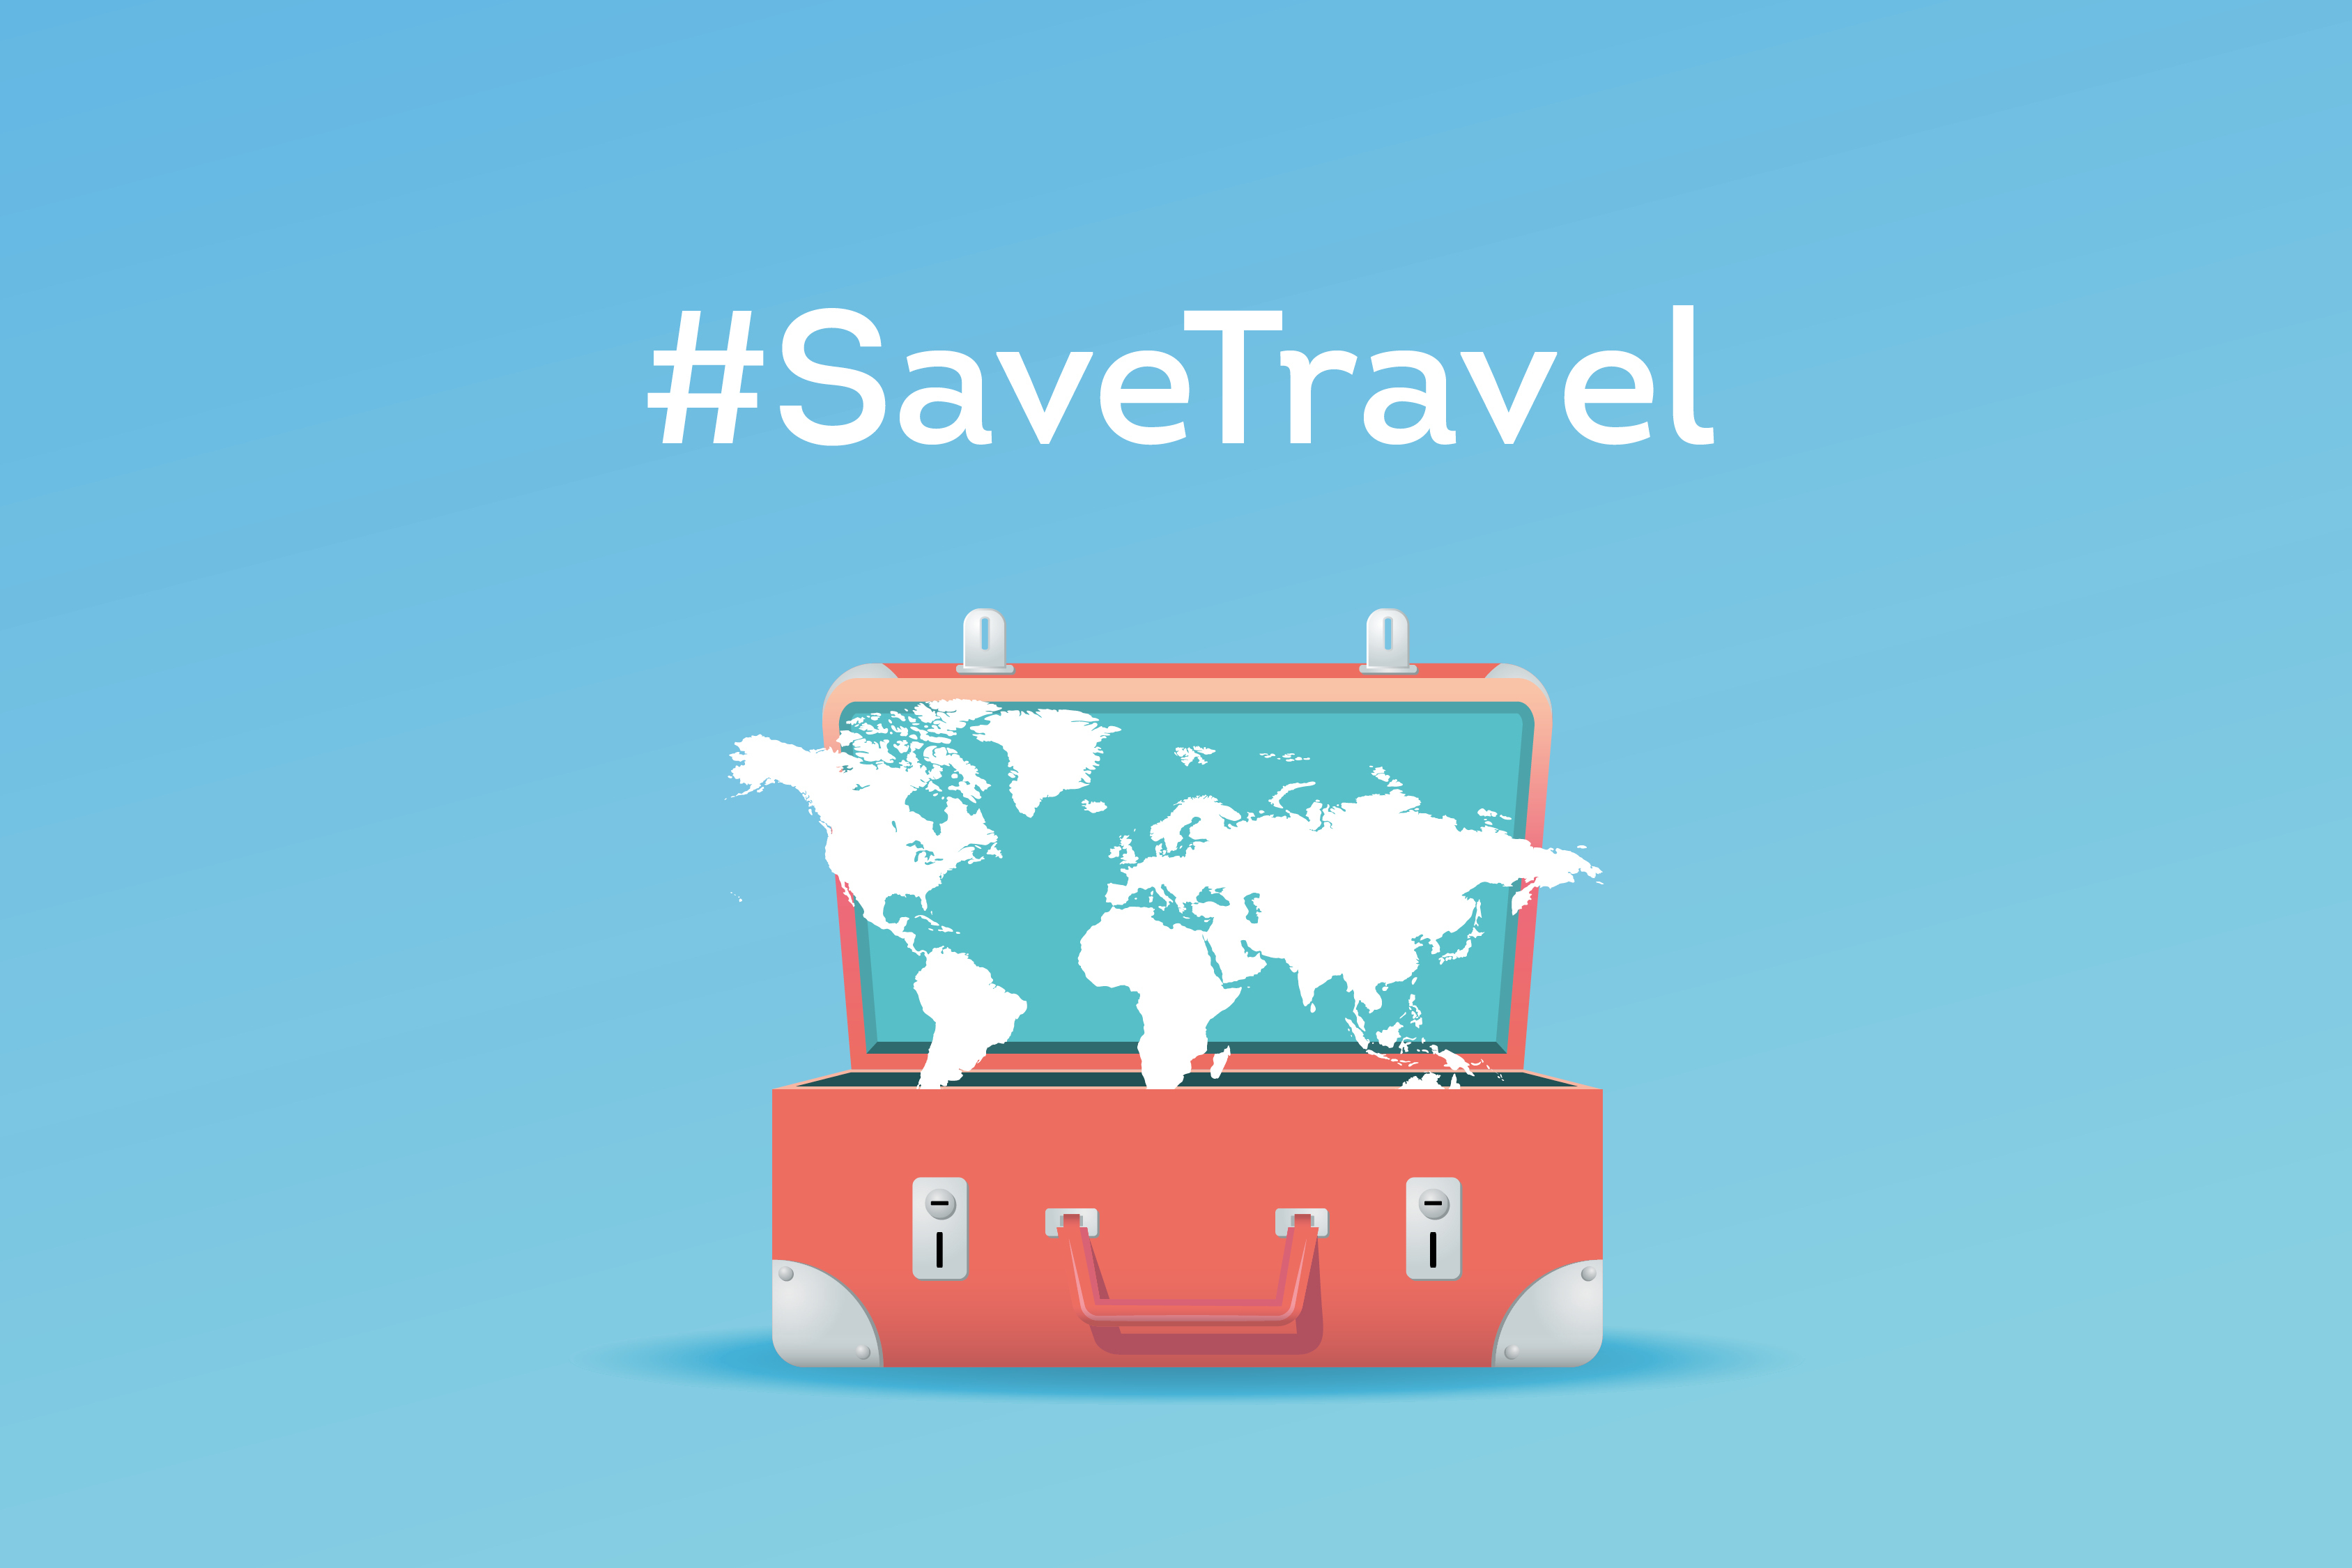 Save Travel - download button below image